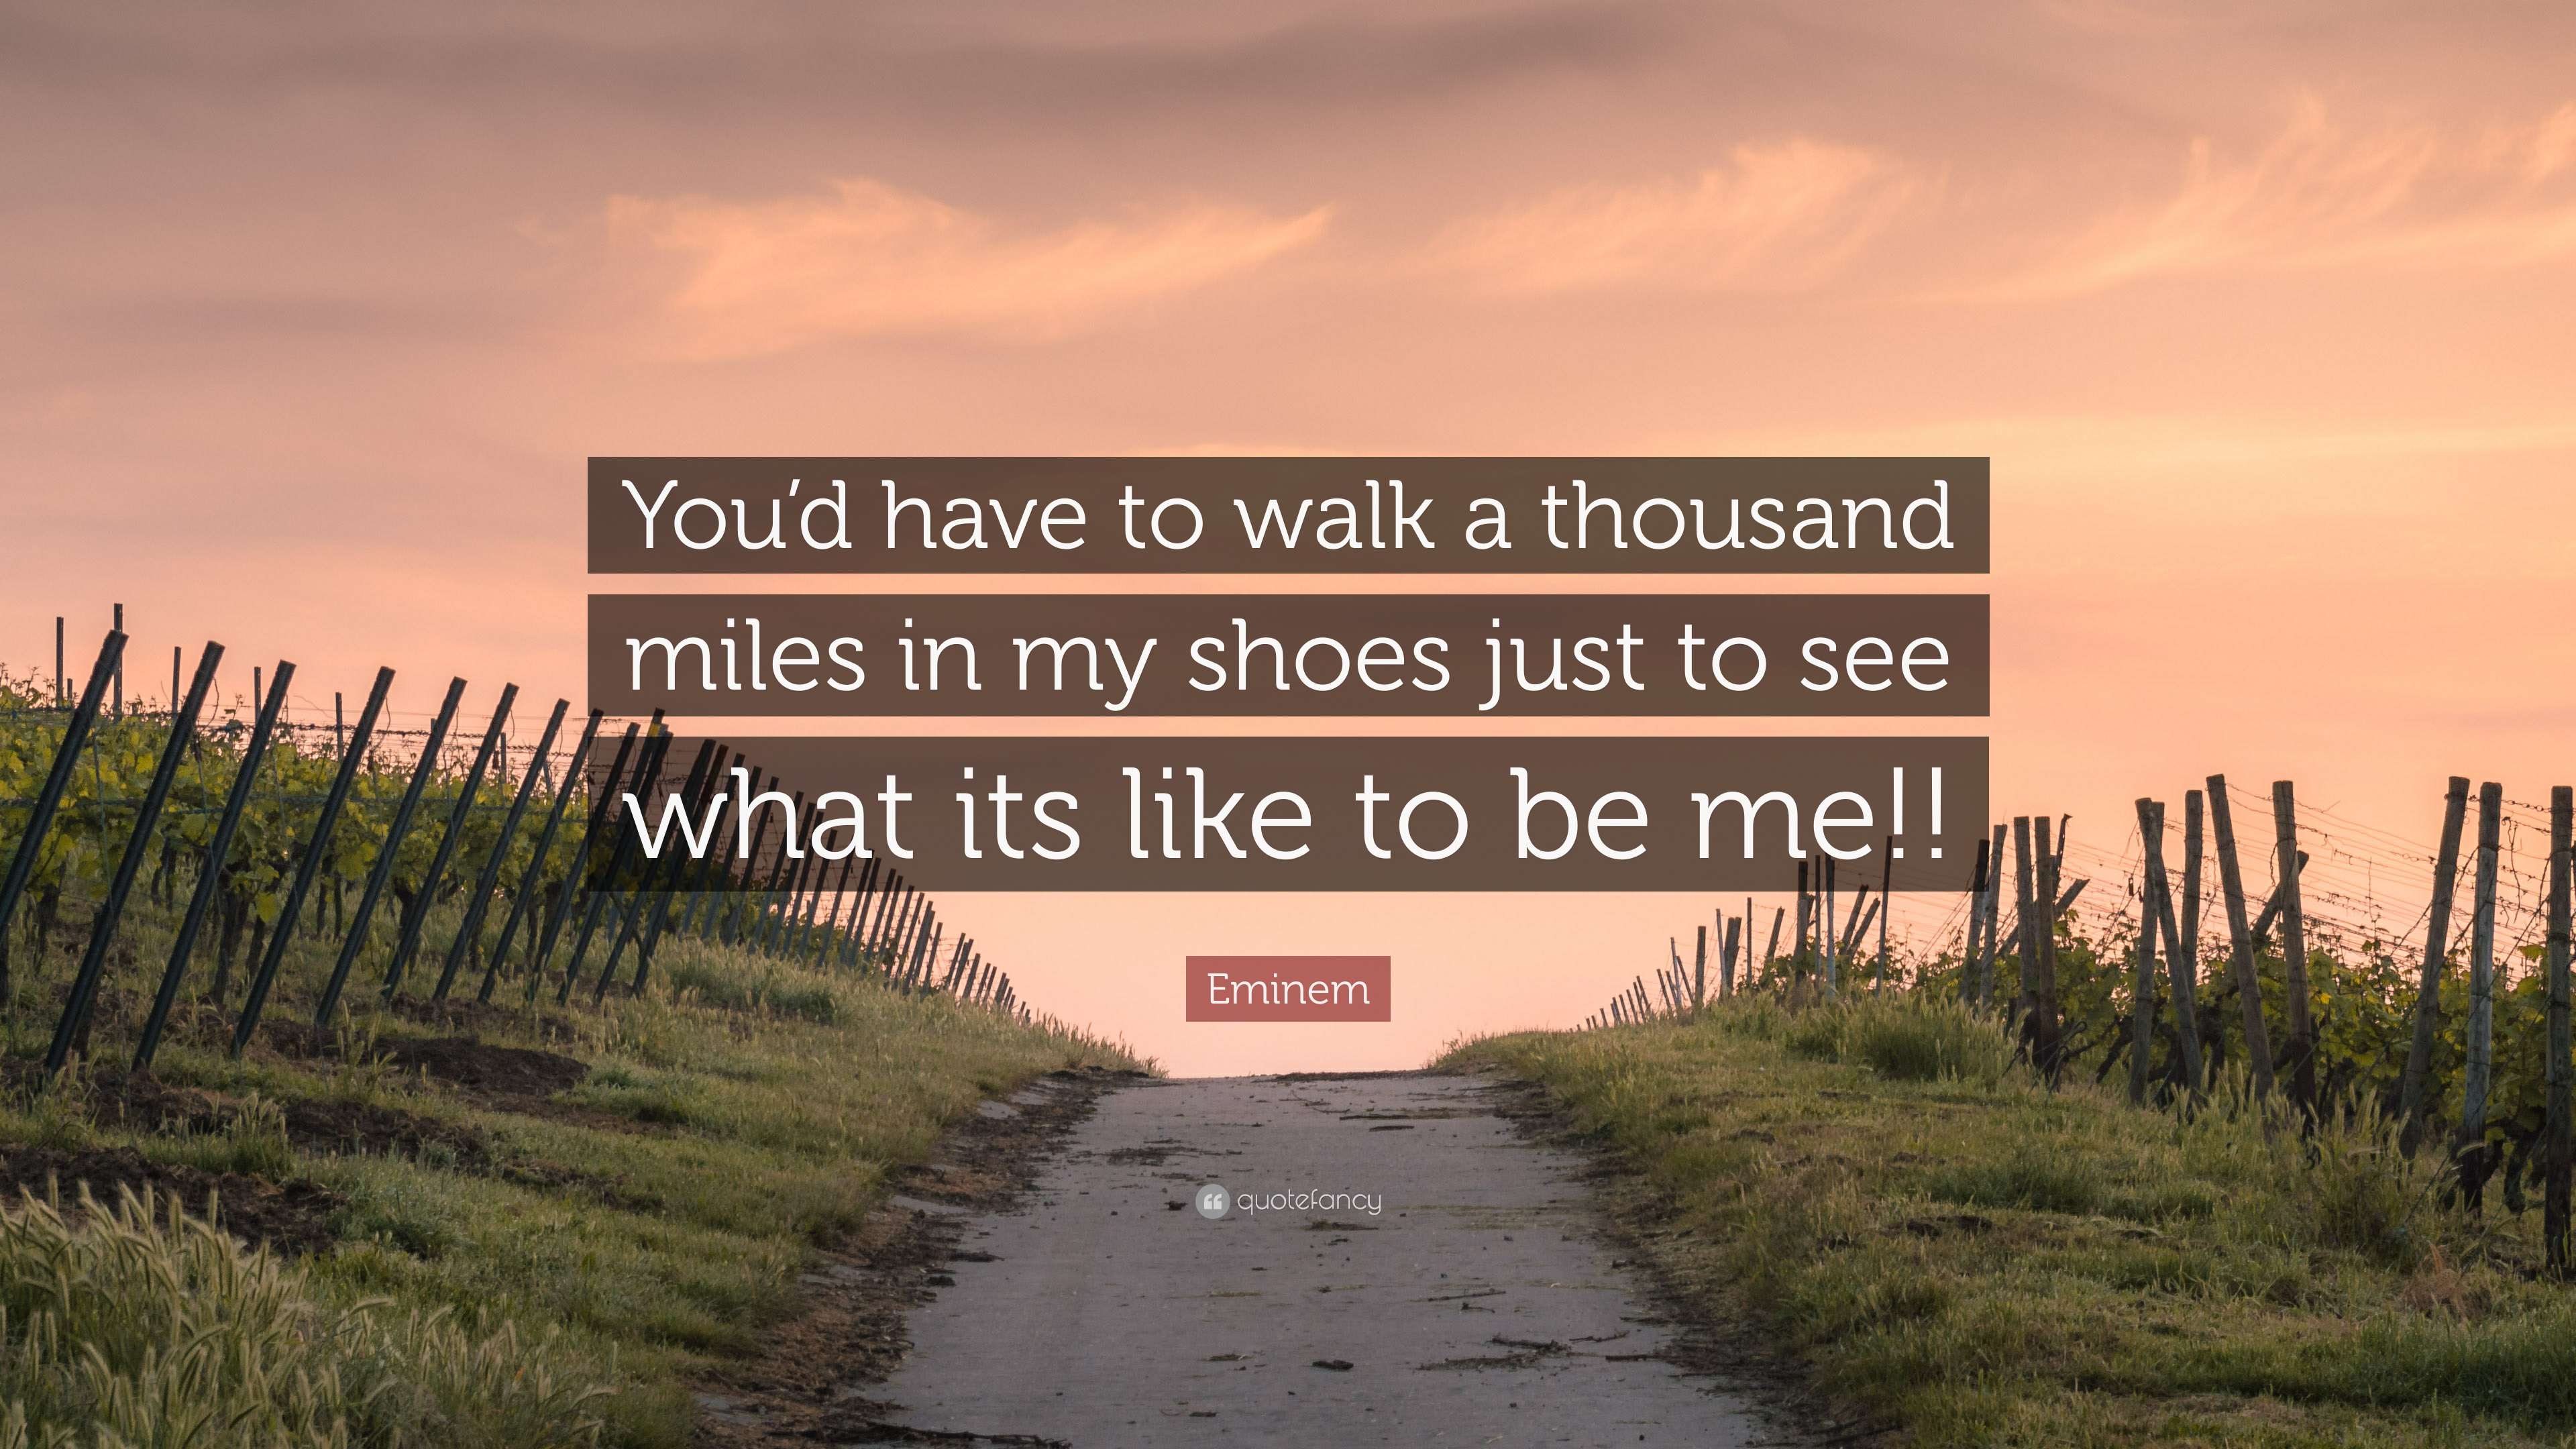 The Woman Who Walked a Thousand Miles